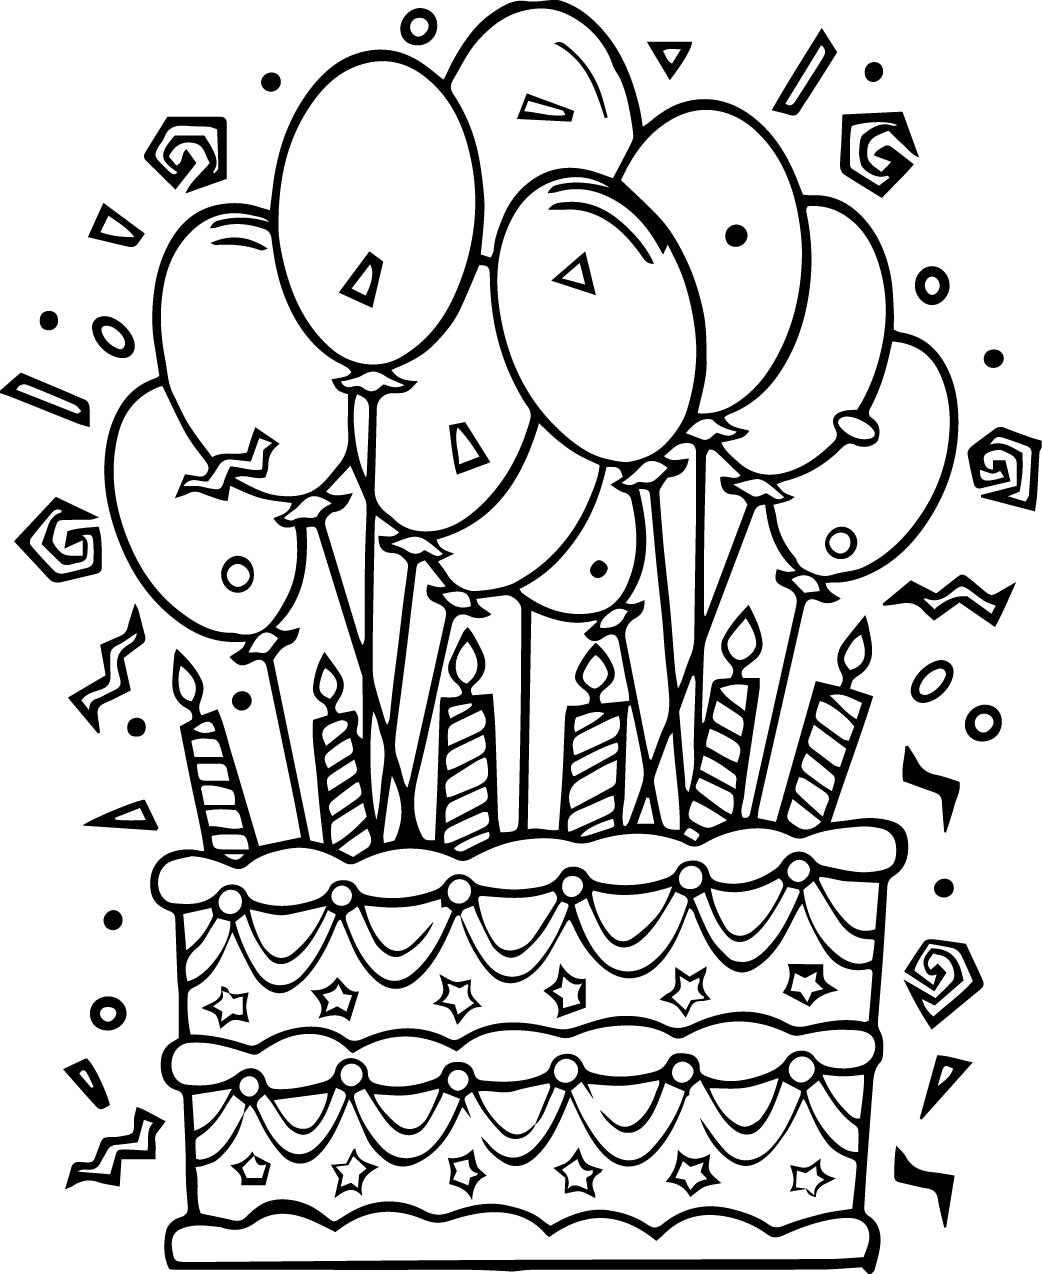 happy 3rd birthday coloring pages happy 3rd birthday coloring pages coloring pages 3rd birthday happy